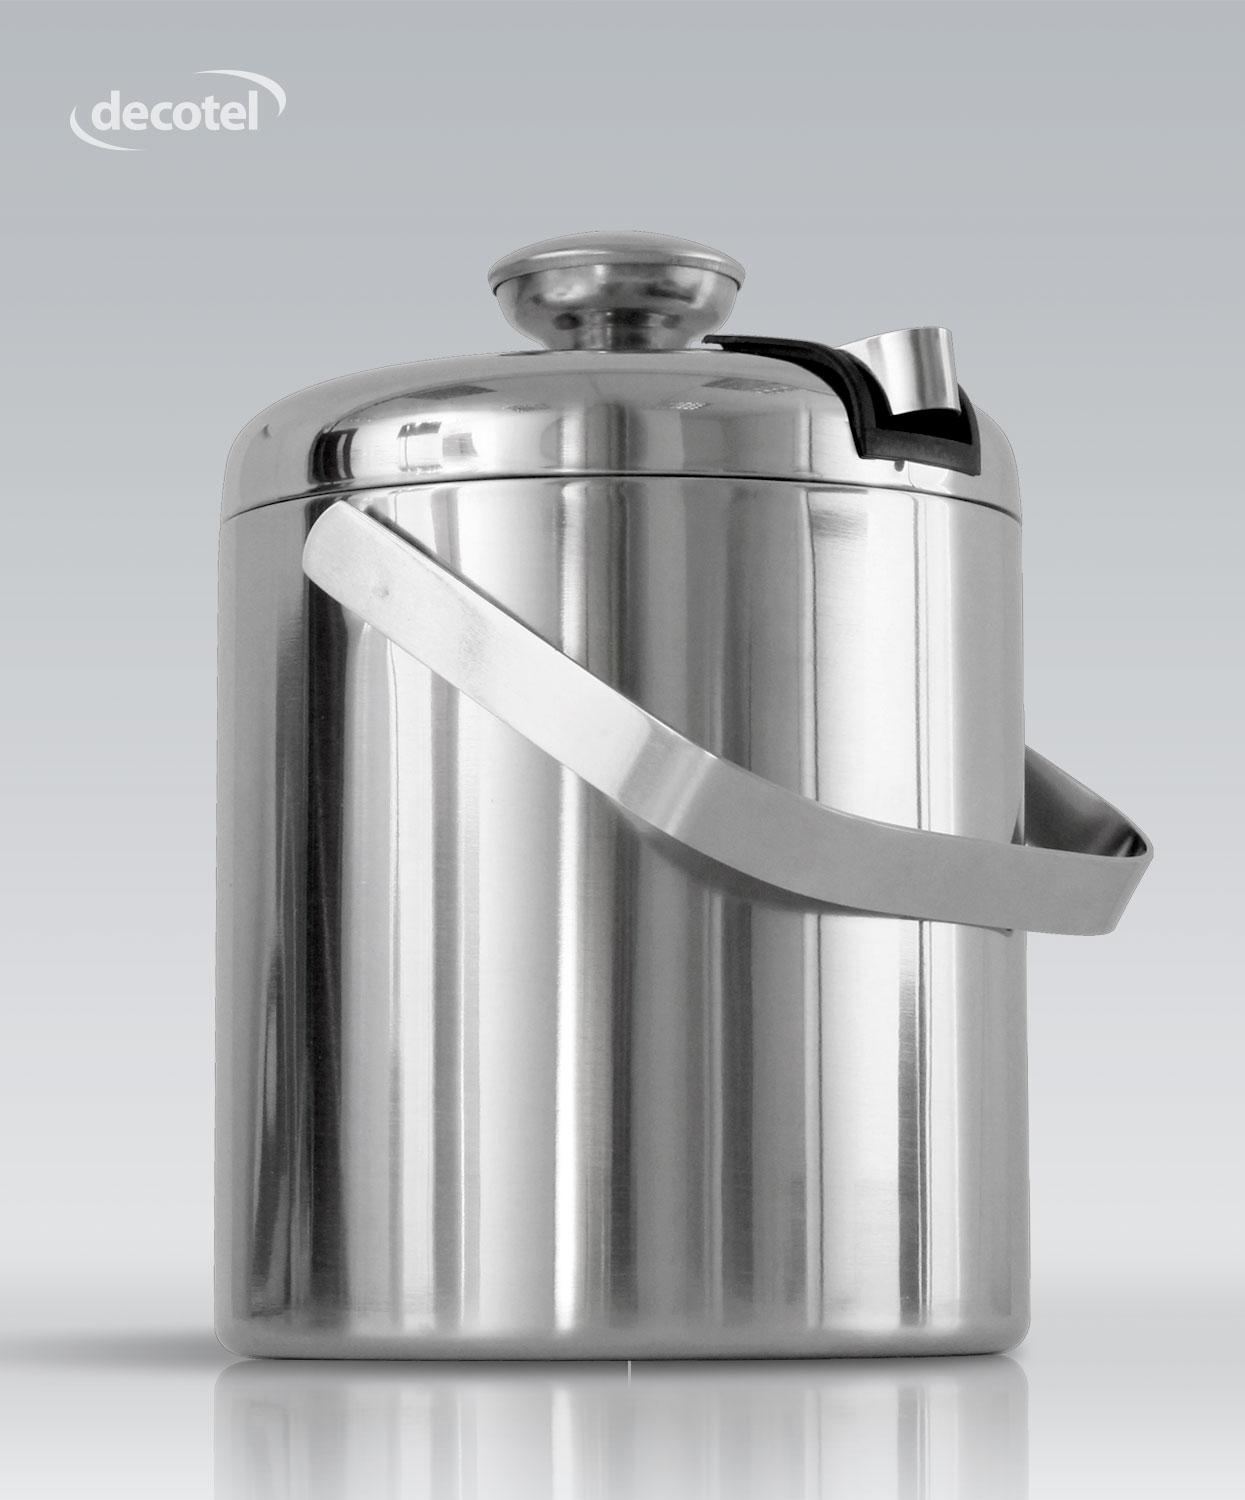 Decotel Stainless Steel Ice Bucket